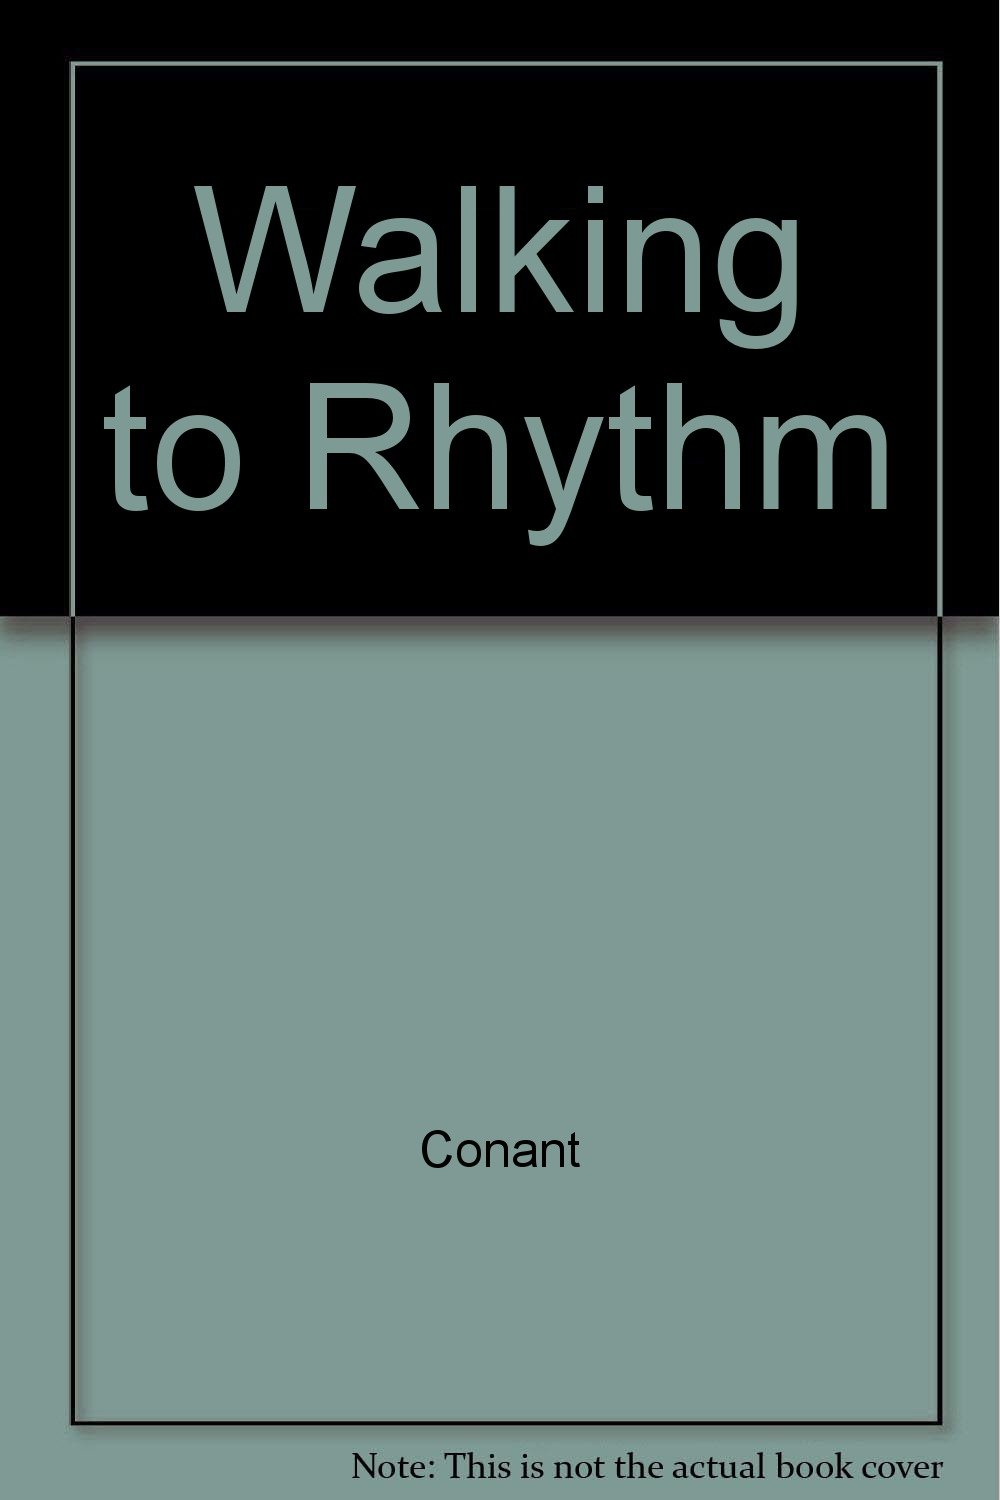 Walking to Rhythm: Music to Pace You, Subliminal Messages to Motivate You